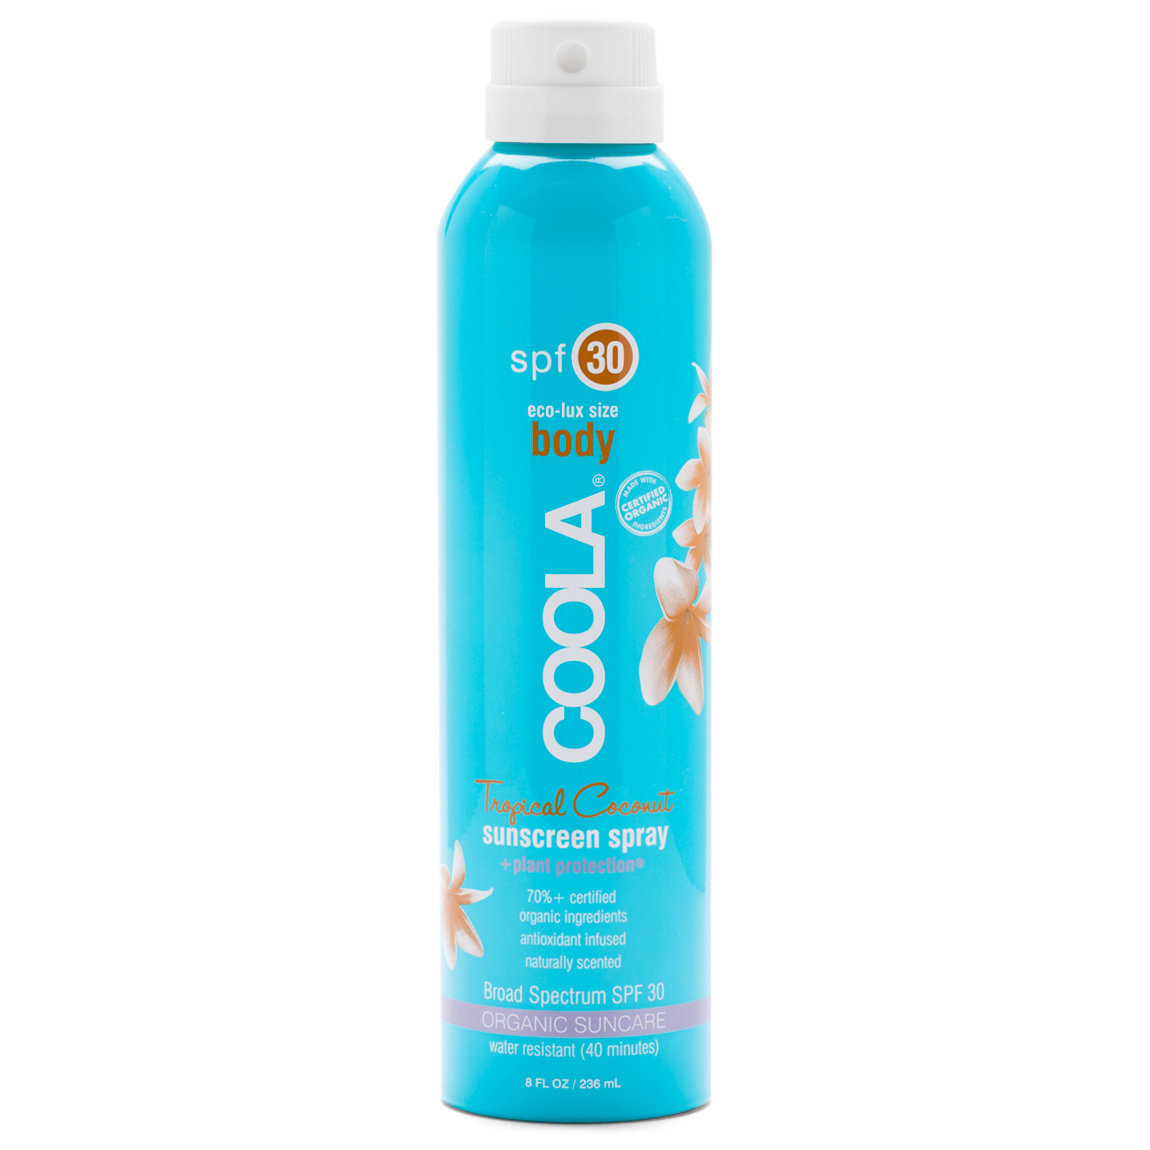 COOLA Eco-Lux Sport Sunscreen Spray SPF 30 Tropical Coconut product swatch.